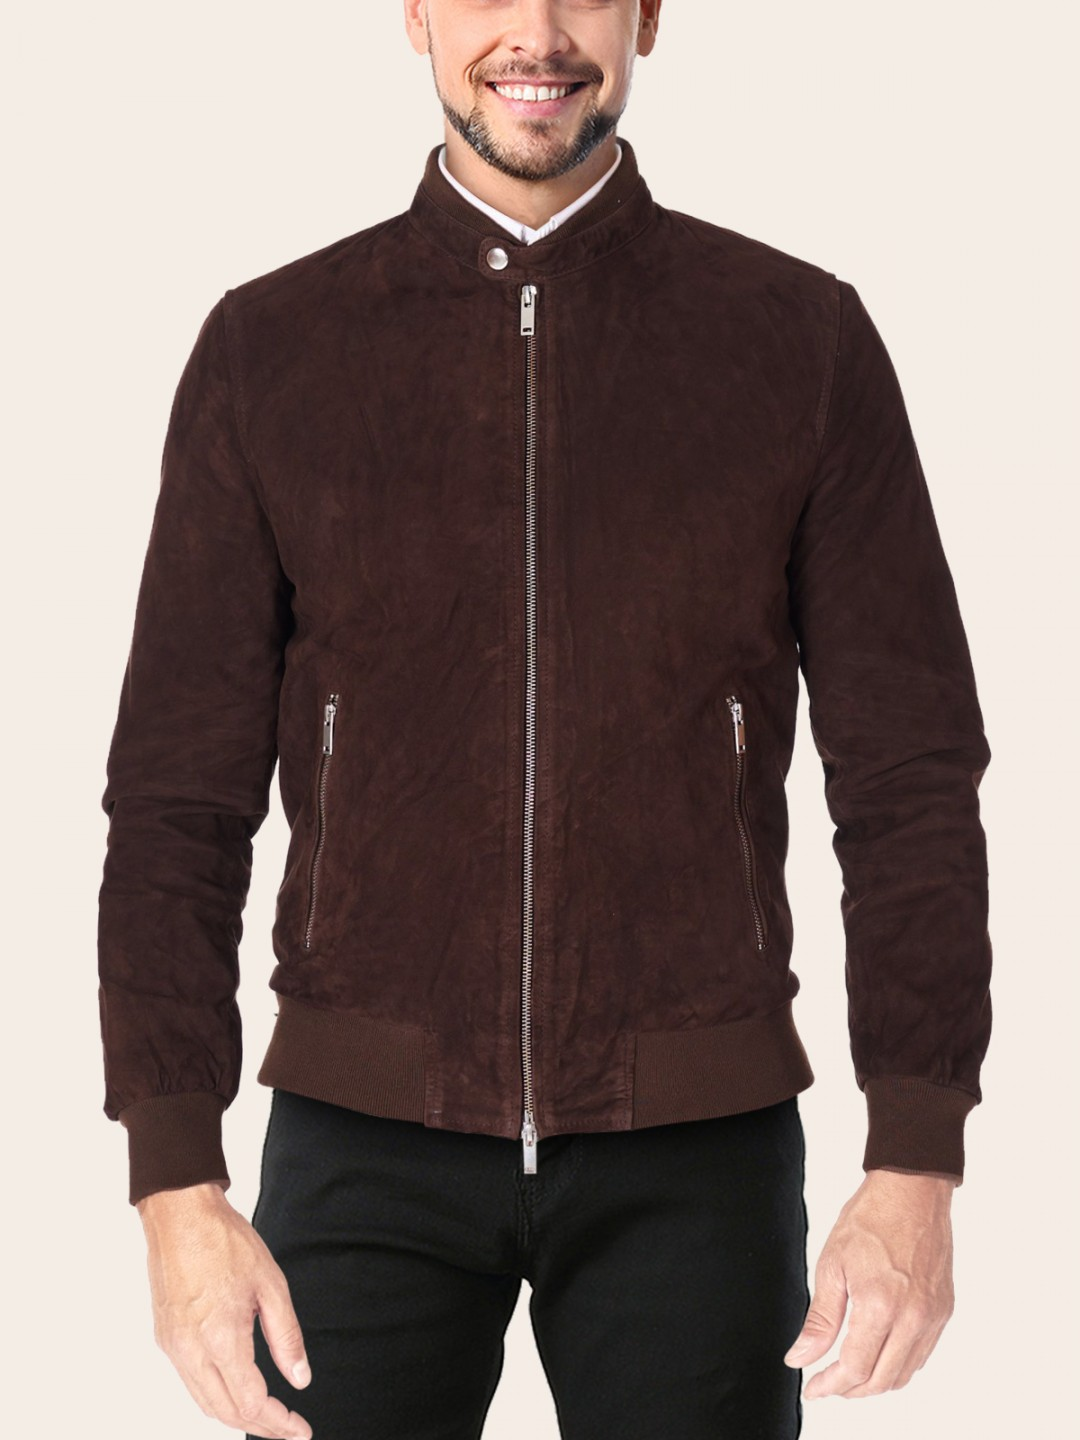 Chocolate Brown Leather Jacket - Samish Leather